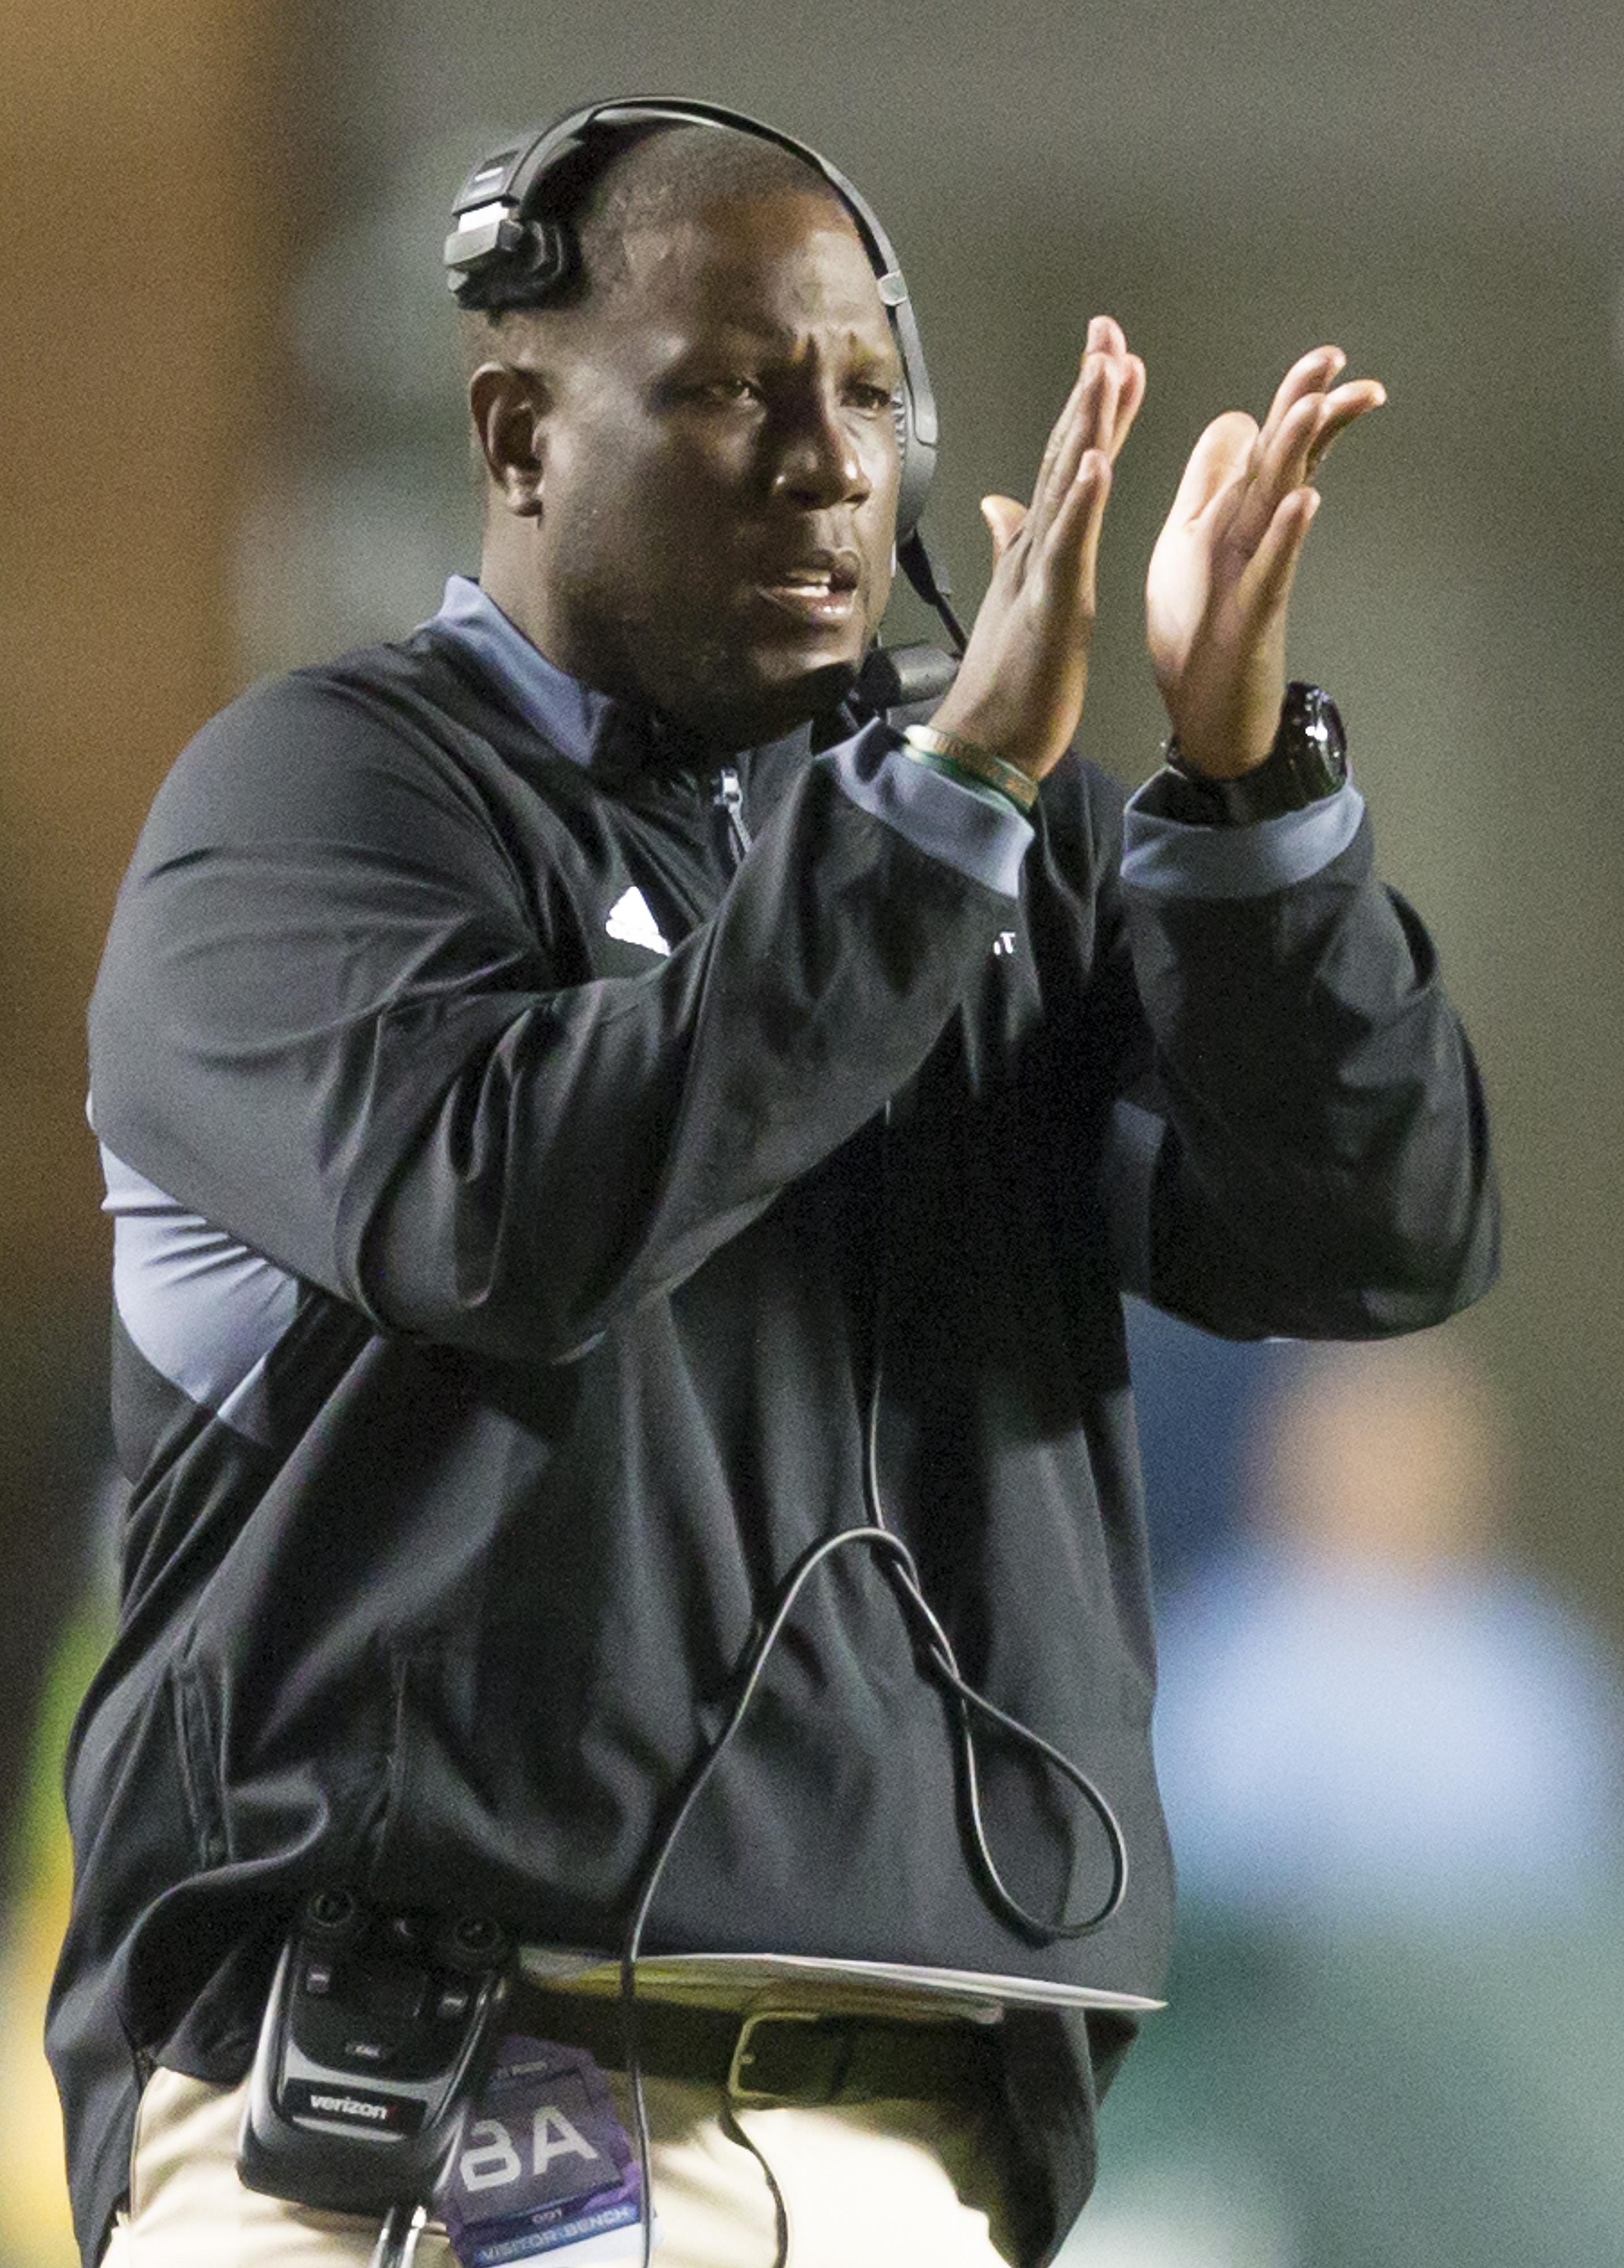 Miami interim head coach Larry Scott encourages his players from the sideline during the second half of an NCAA college football game, in Chapel Hill, N.C., Saturday, Nov. 14, 2015. (AP Photo/Rob Brown)